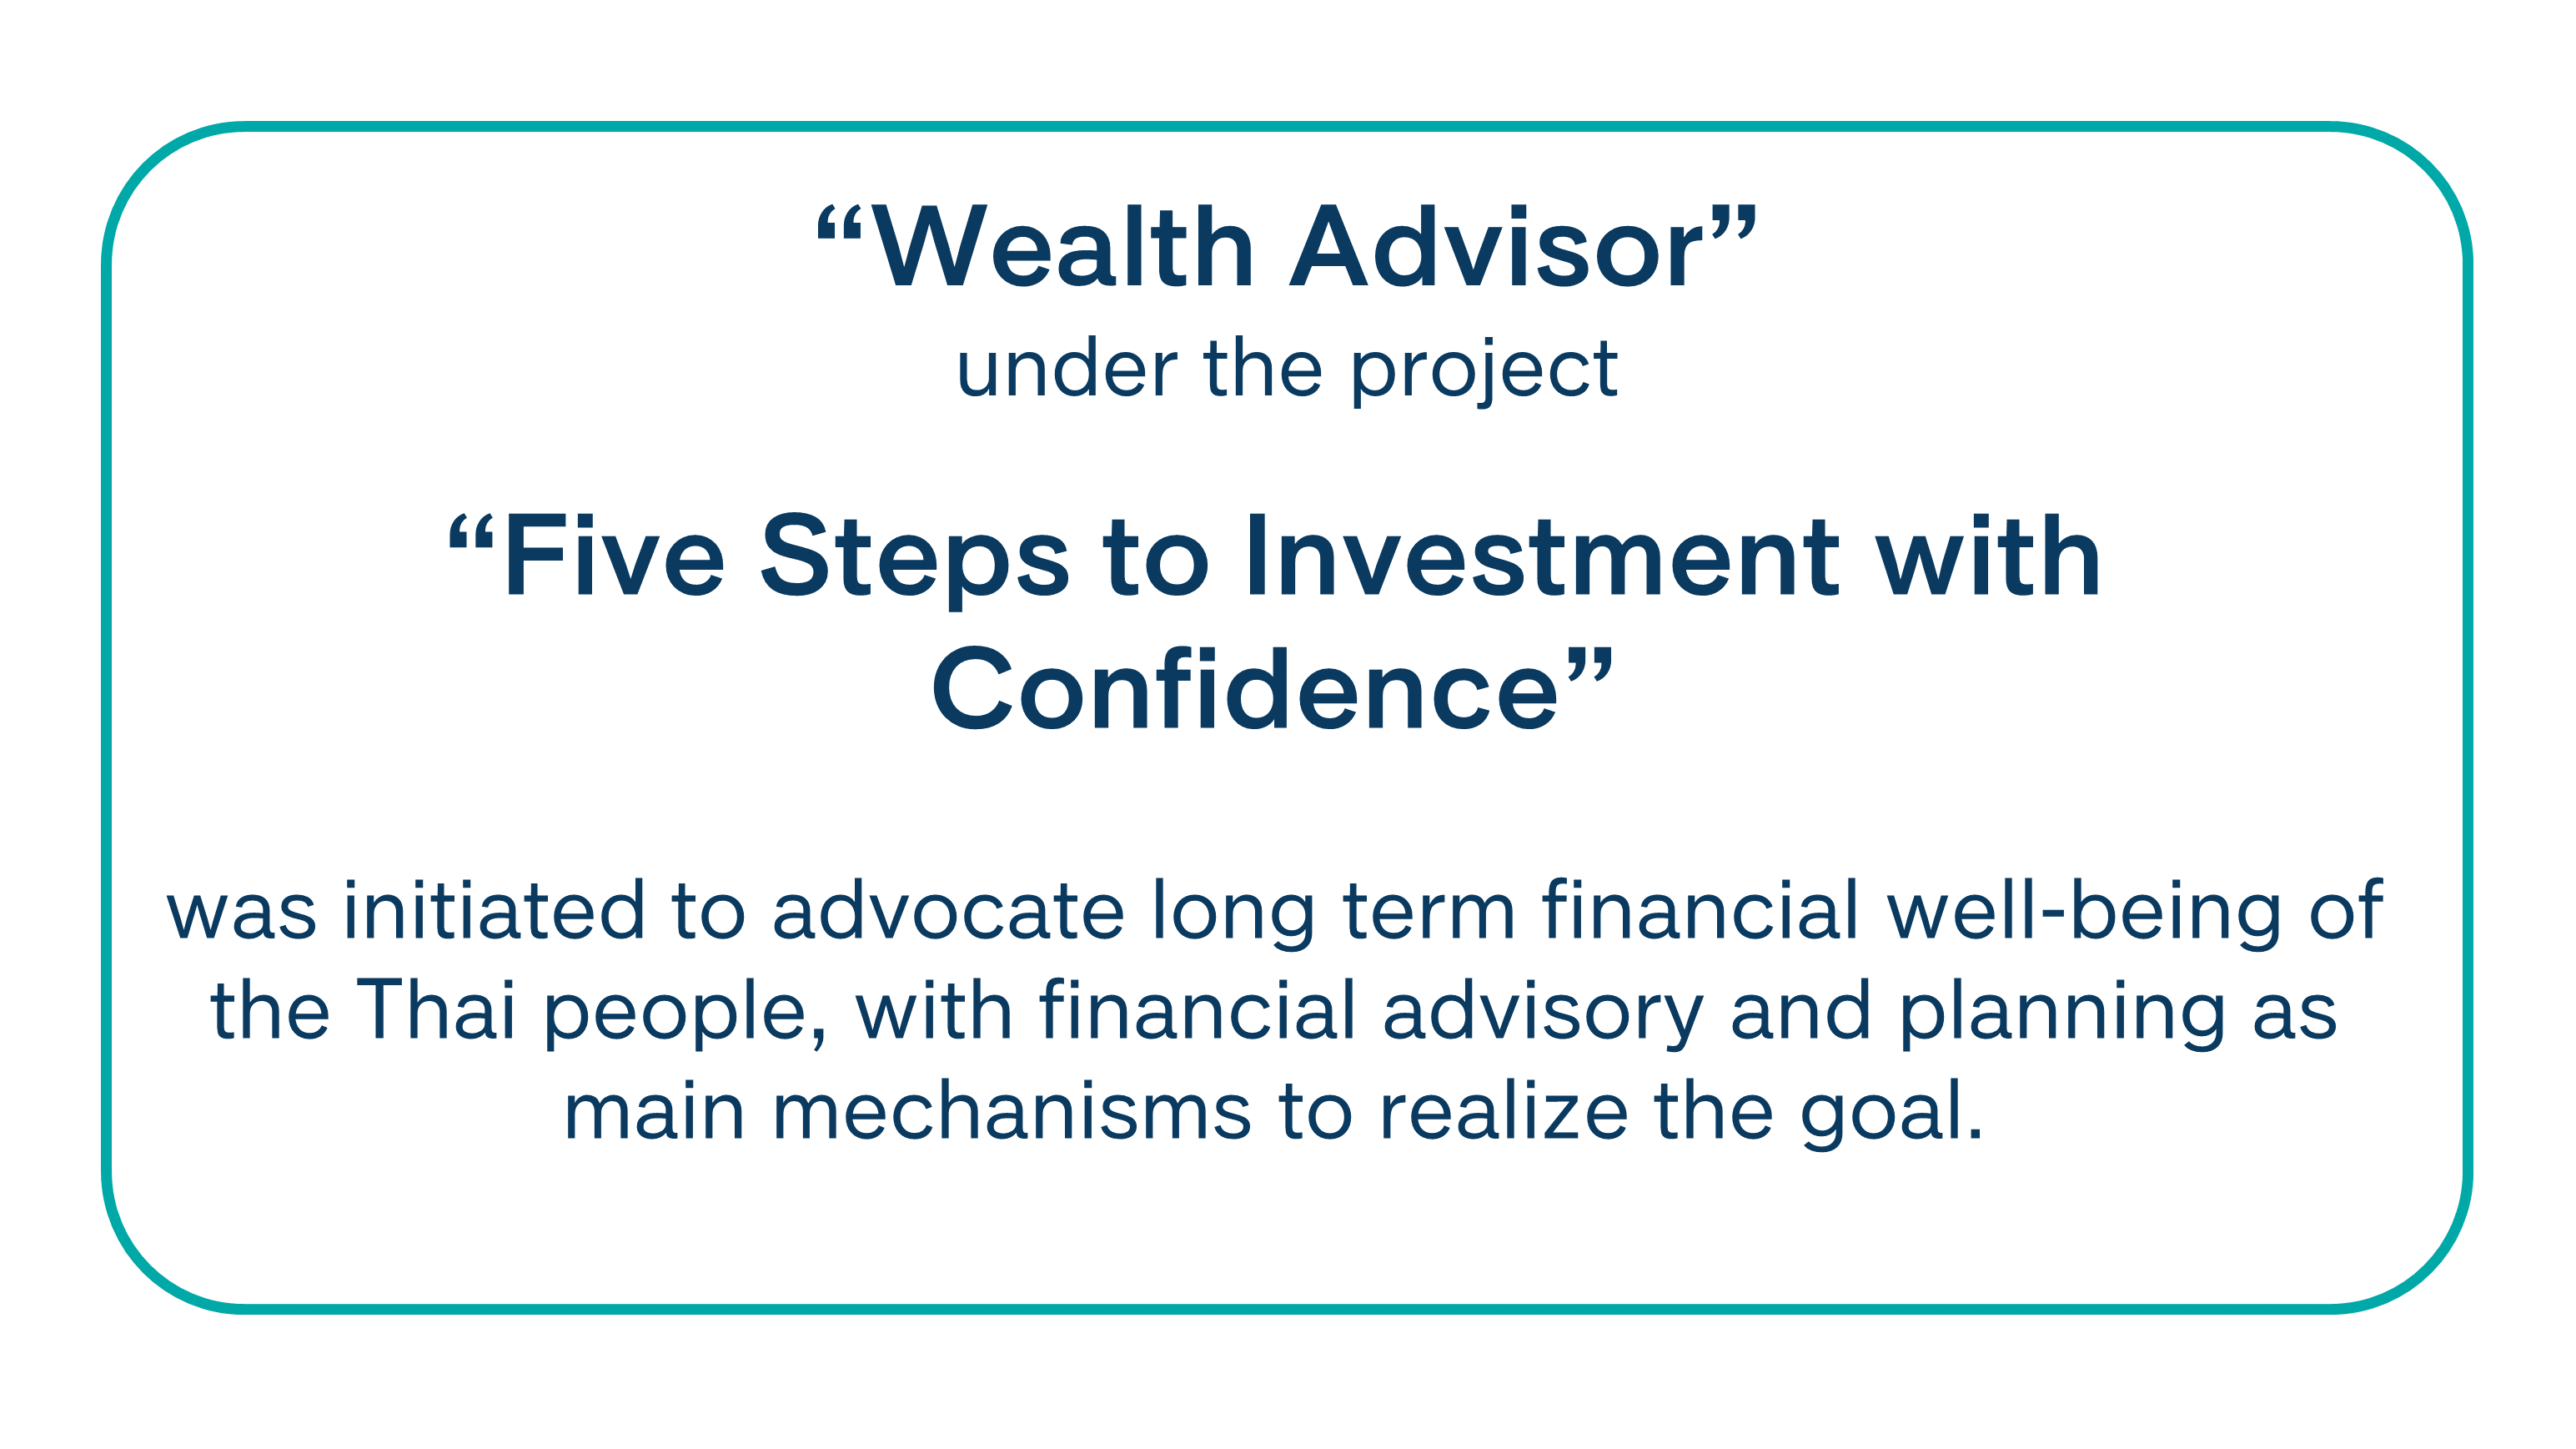 wealth advice_1_edit.png